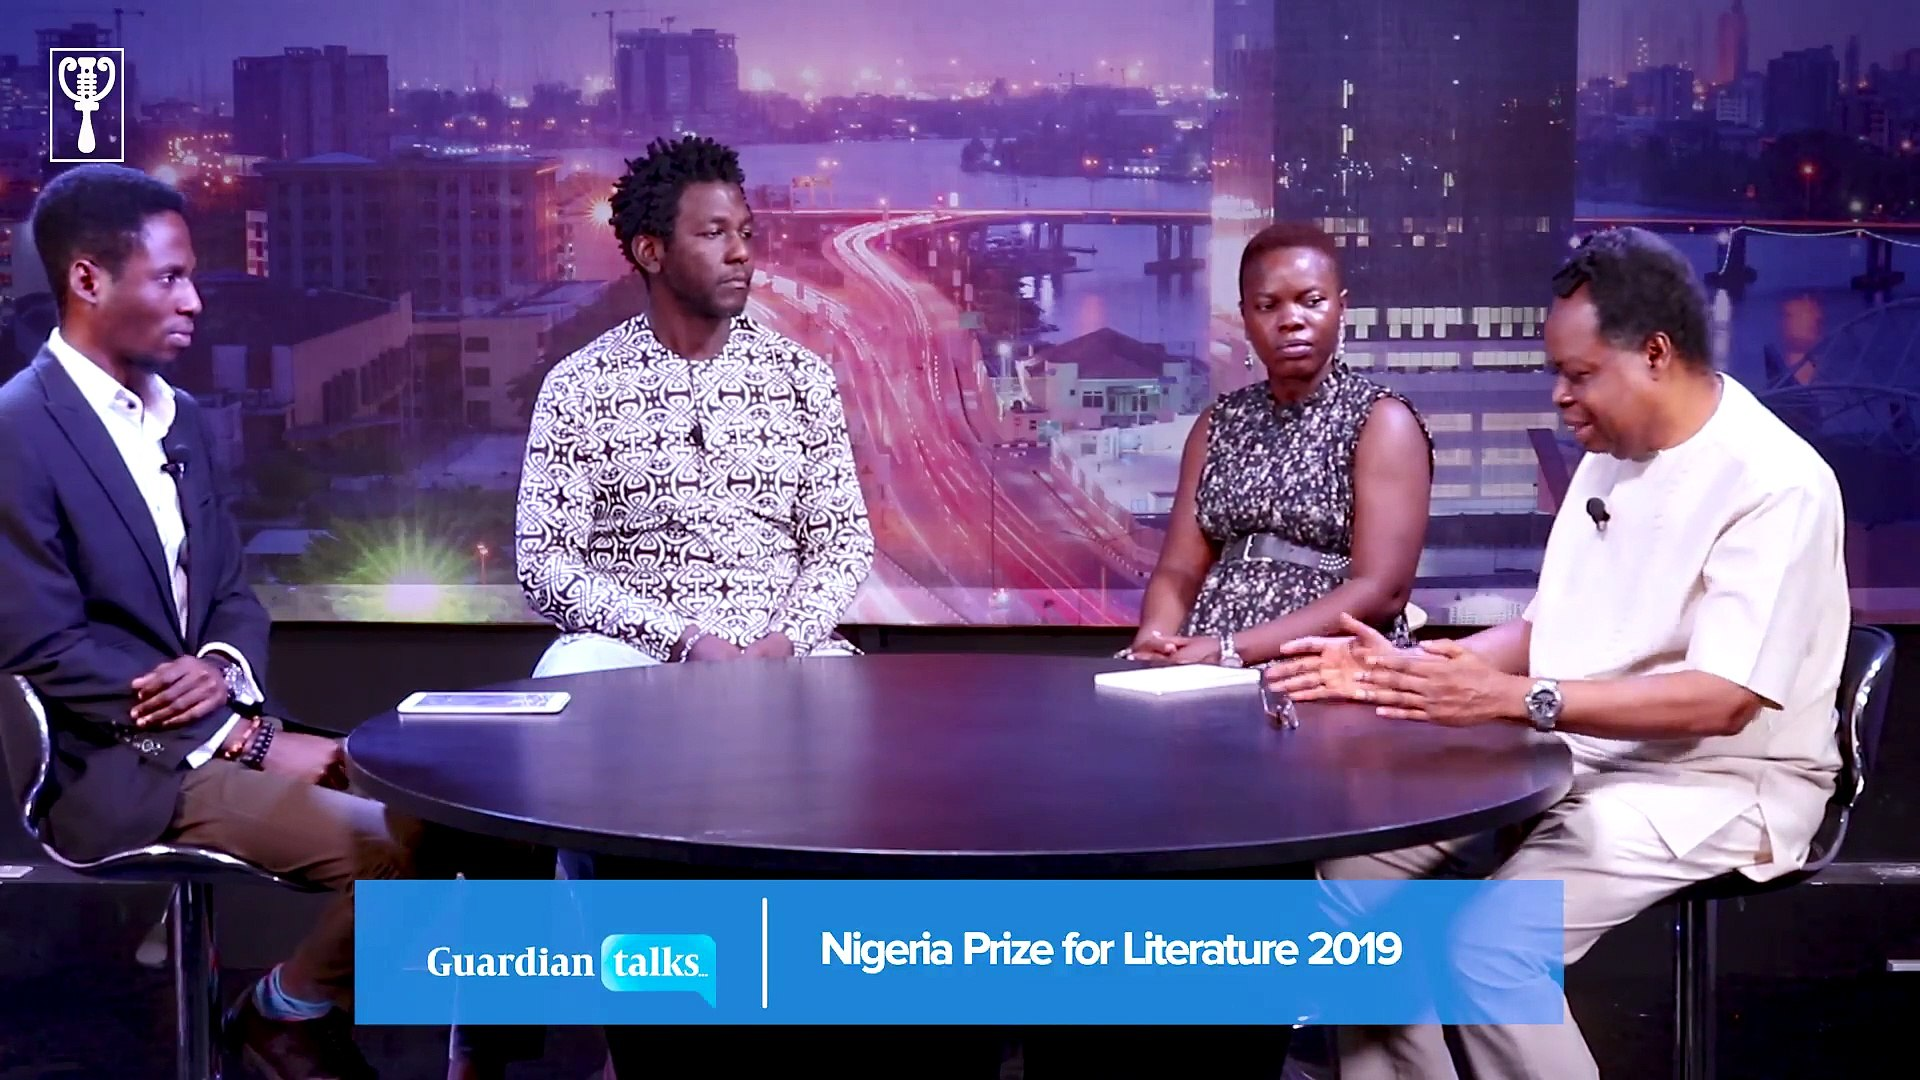 Guardian Talks: Reading culture and the Nigerian prize for Literature